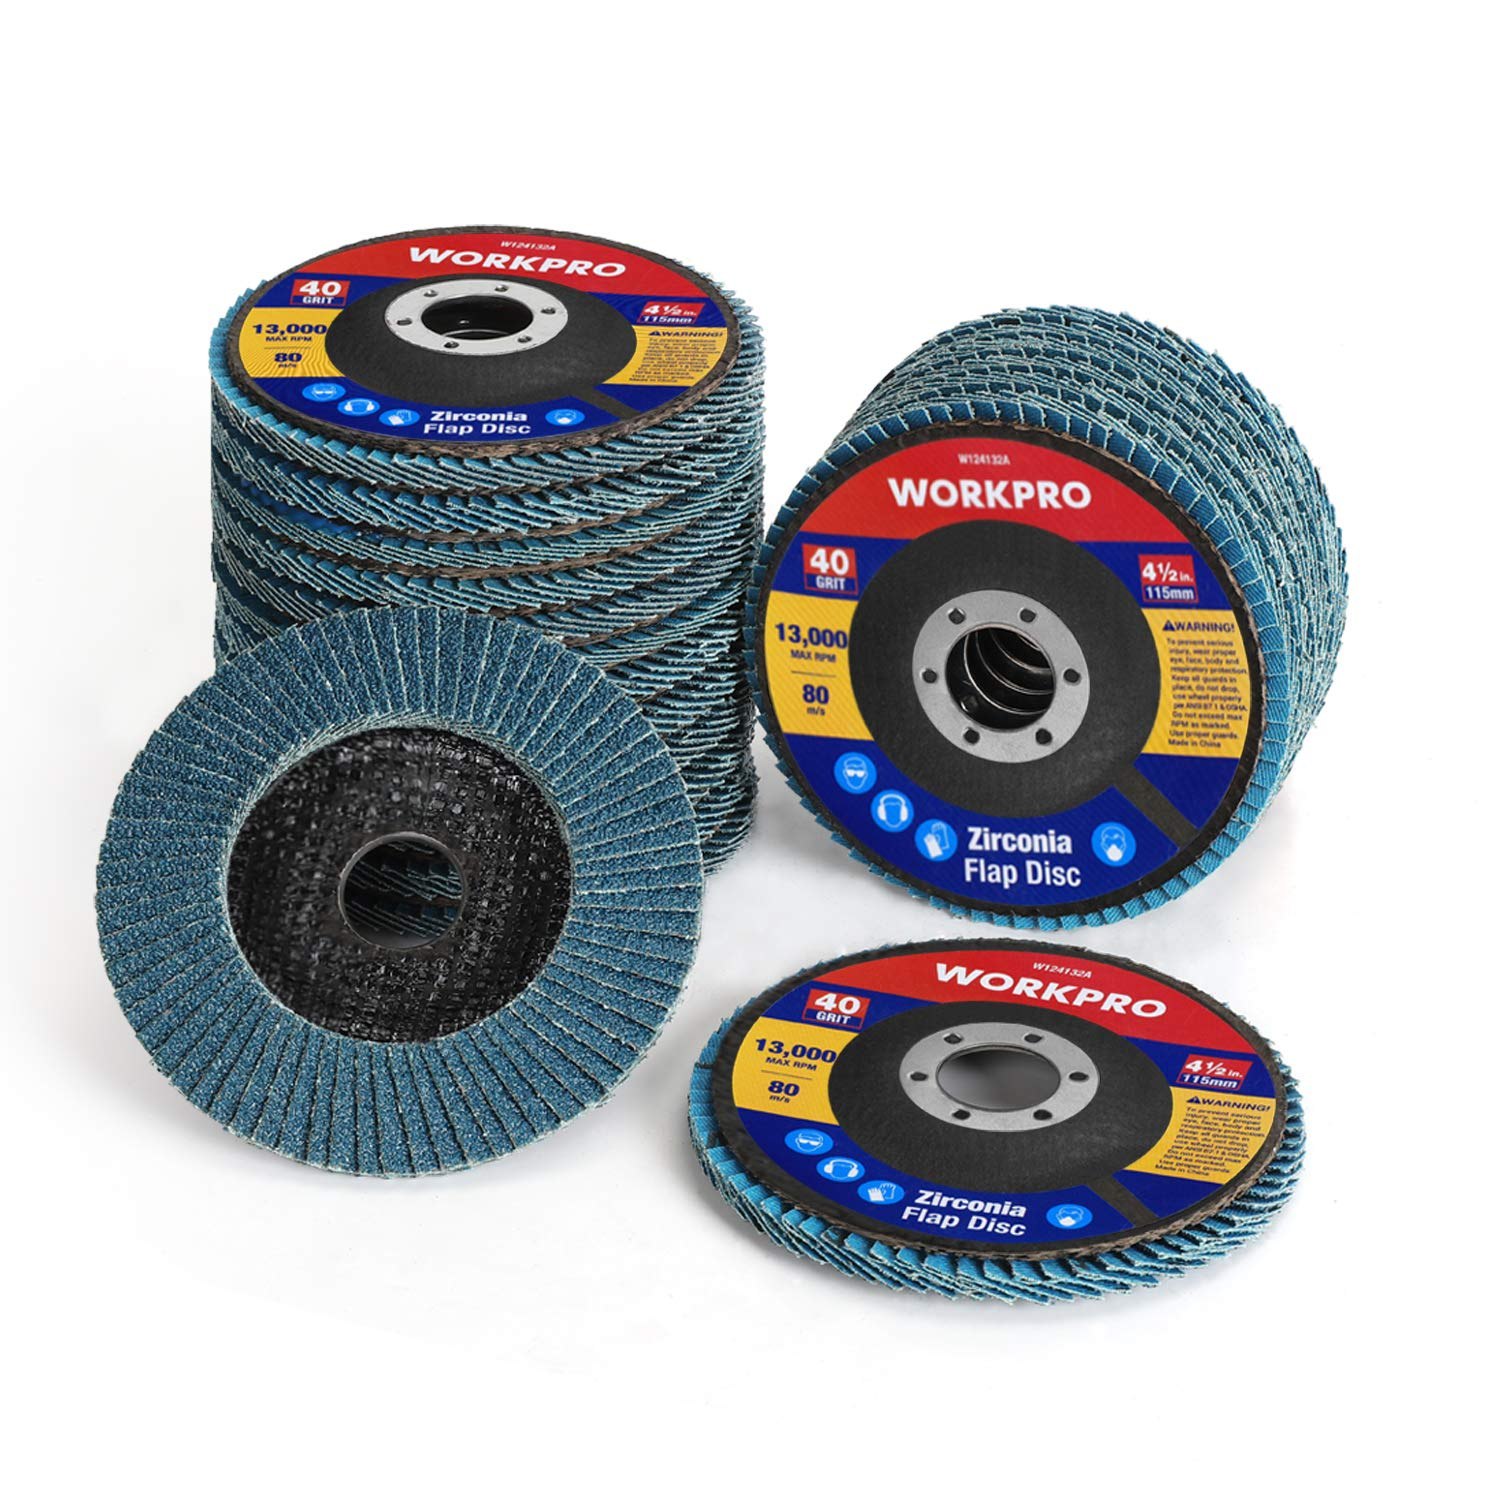 WORKPRO 20-pack Flap Disc, 4-1/2 x 7/8-inch, Zirconia Abrasive Grinding Wheel and Flap Sanding Disc, Includes 40/60/80/120 grits